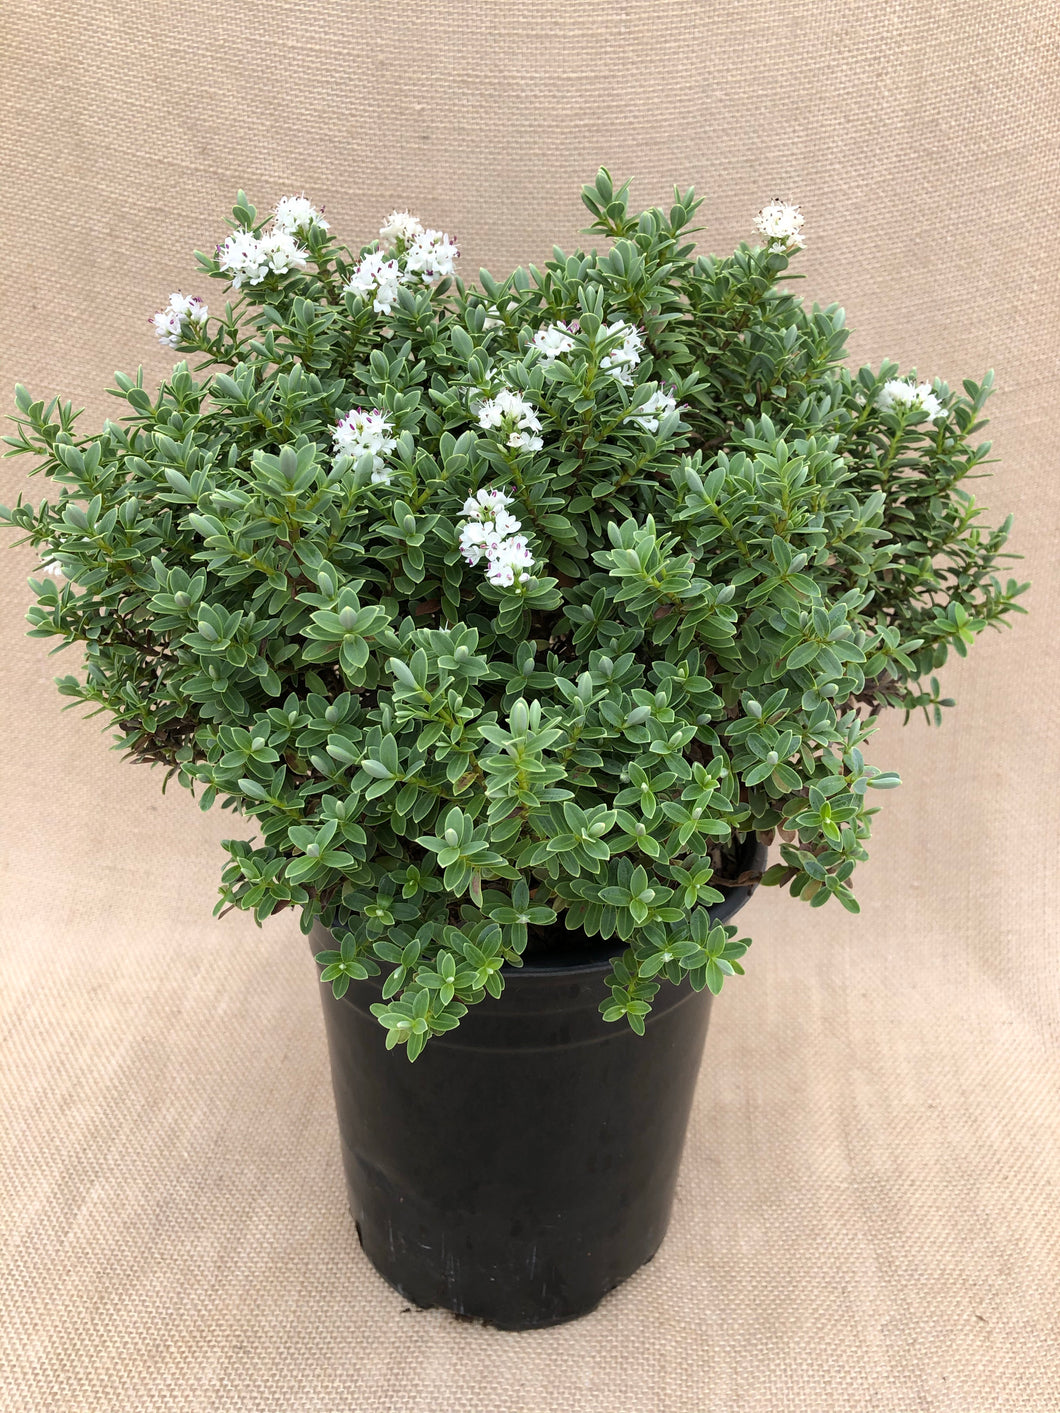 Shrub - Hebe 'Topiaria' (1 Gallon)